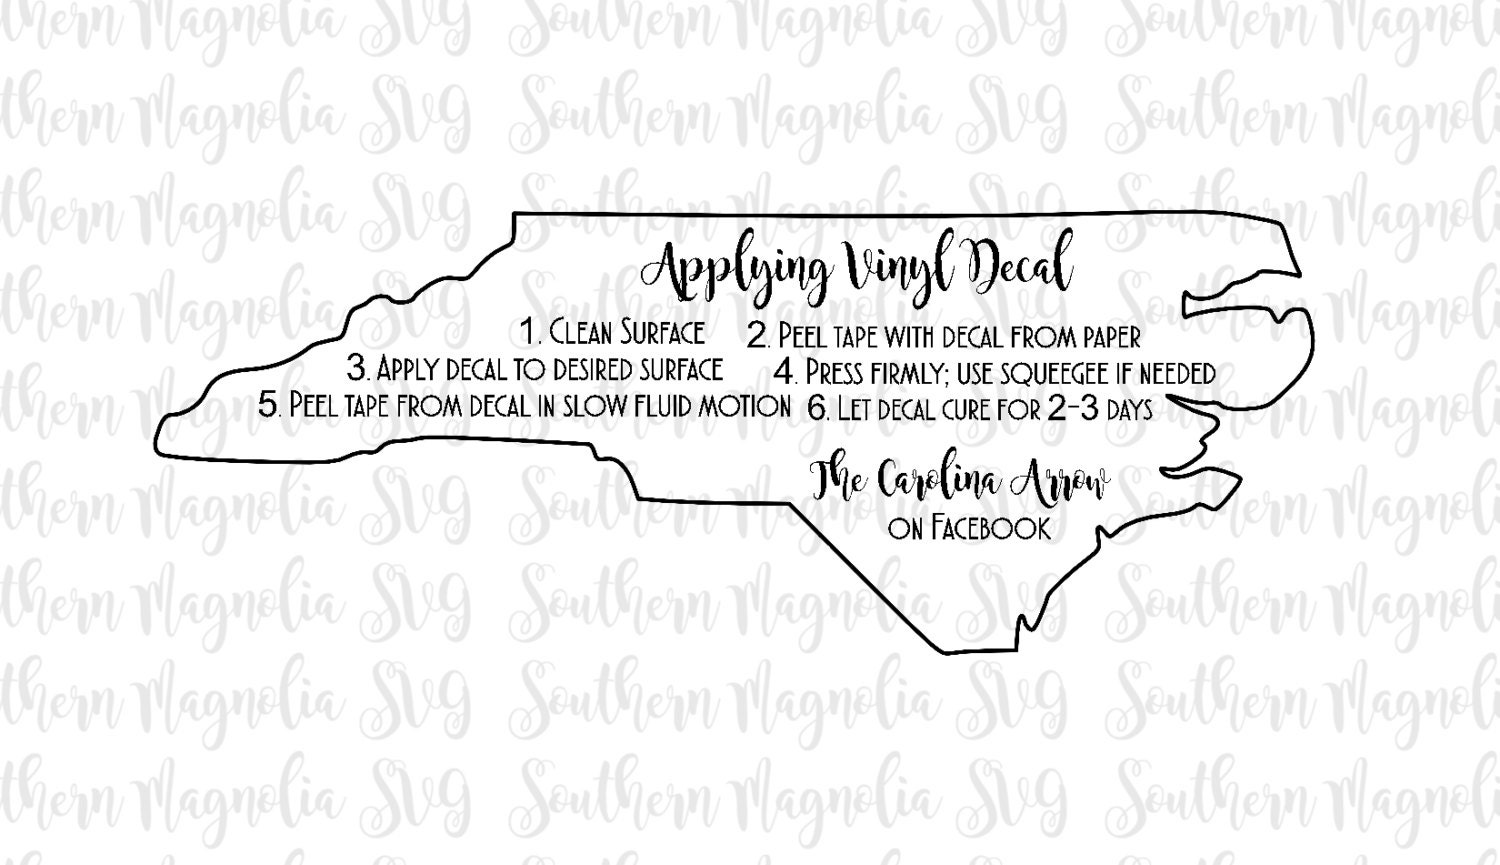 NORTH CAROLINA Vinyl Application Instruction Card Print And - Custom vinyl decal application instructionscare card printable care card instructions printable care